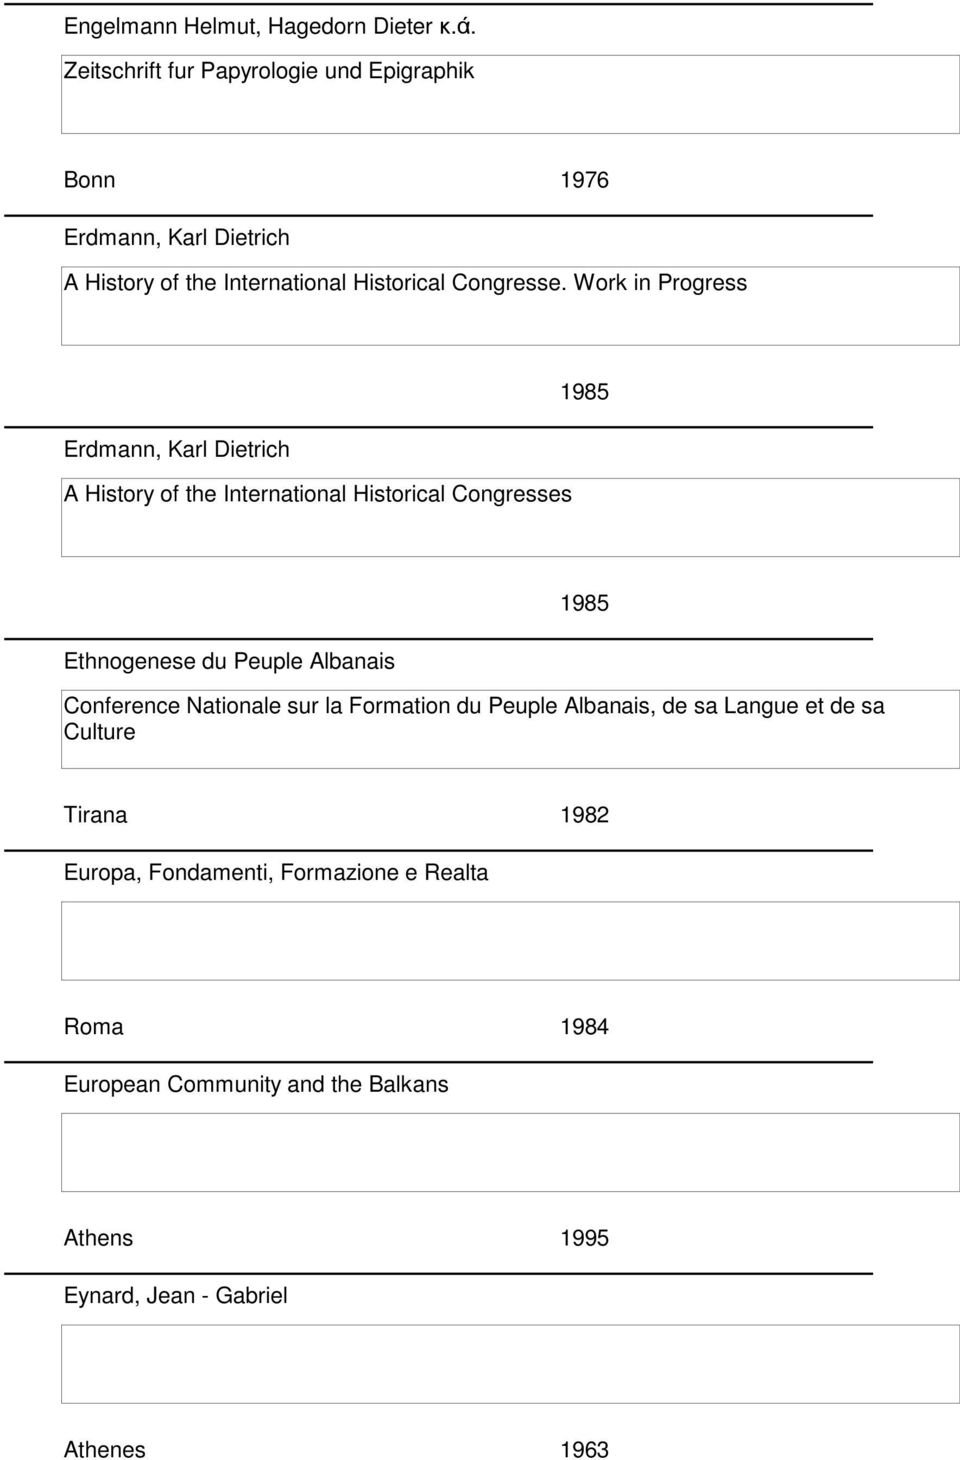 Work in Progress Erdmann, Karl Dietrich A History of the International Historical Congresses 1985 Ethnogenese du Peuple Albanais 1985